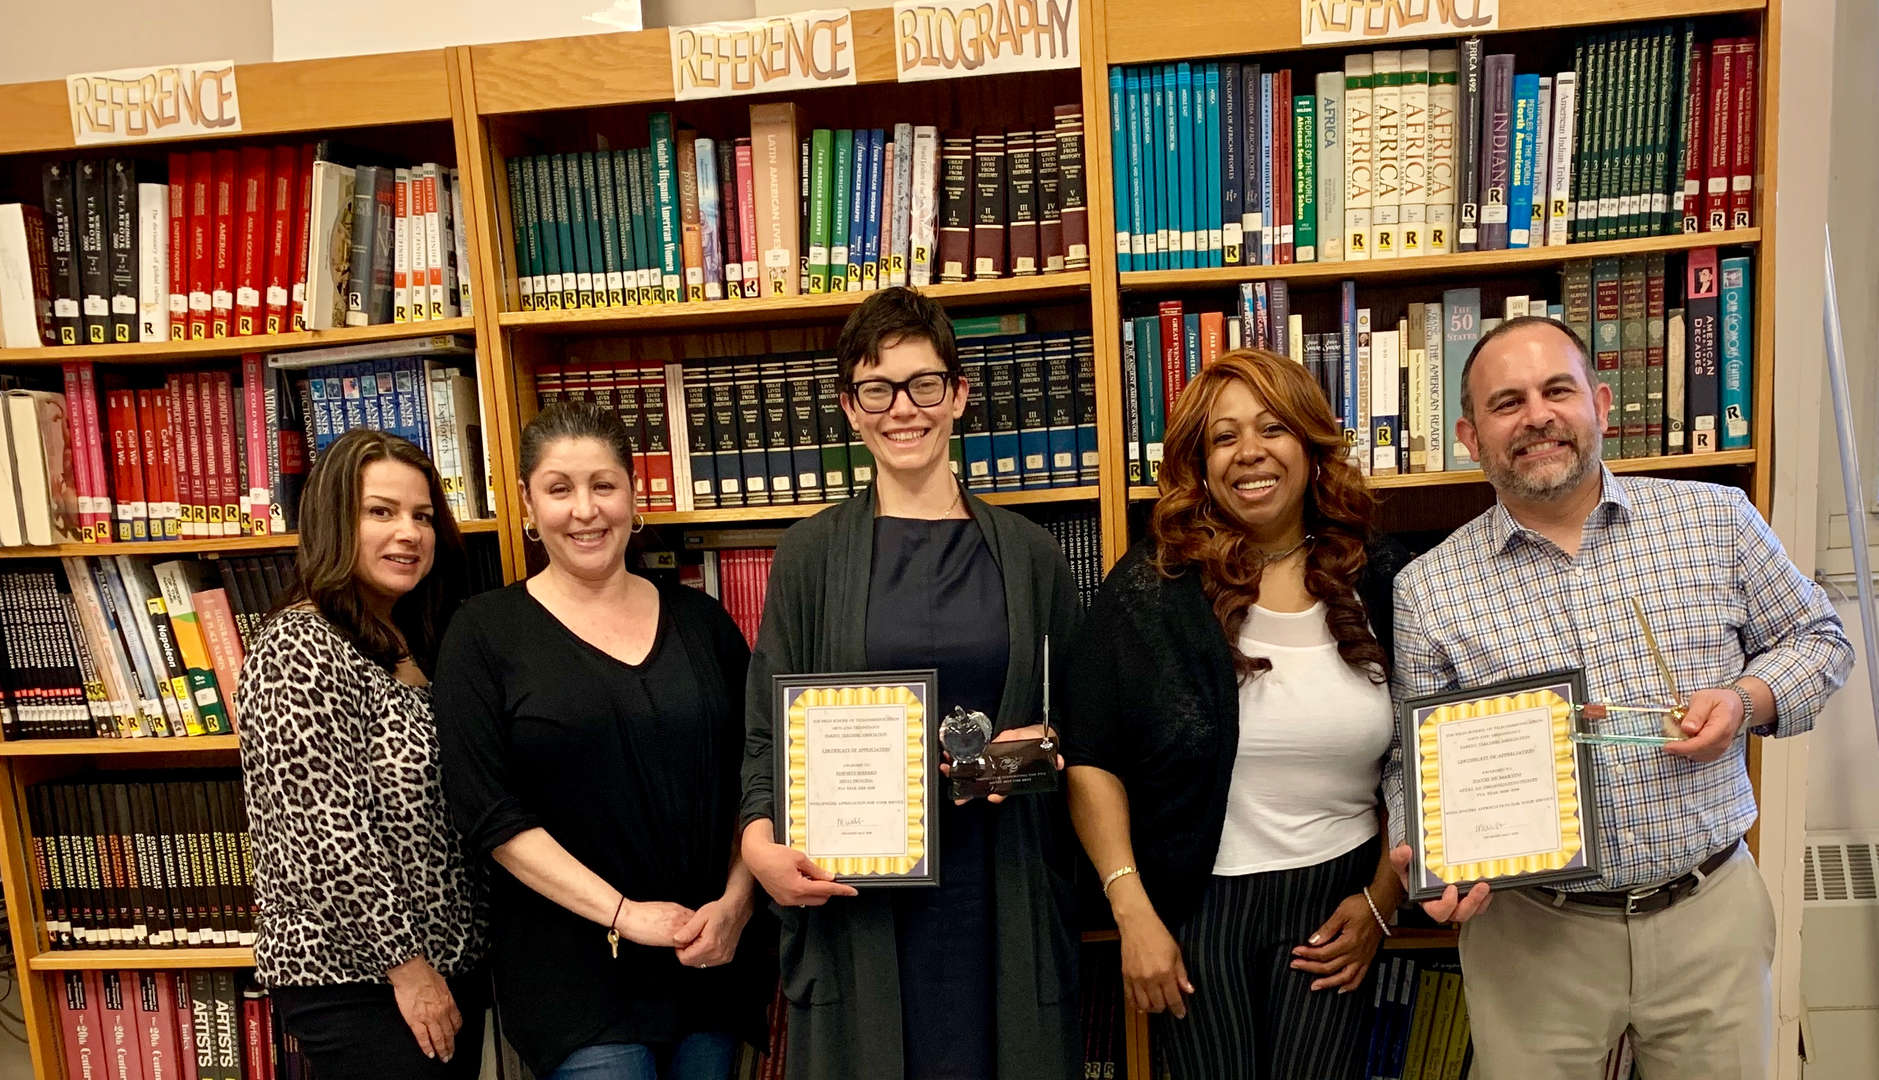 Five members of the PTA holding award plaques in the library